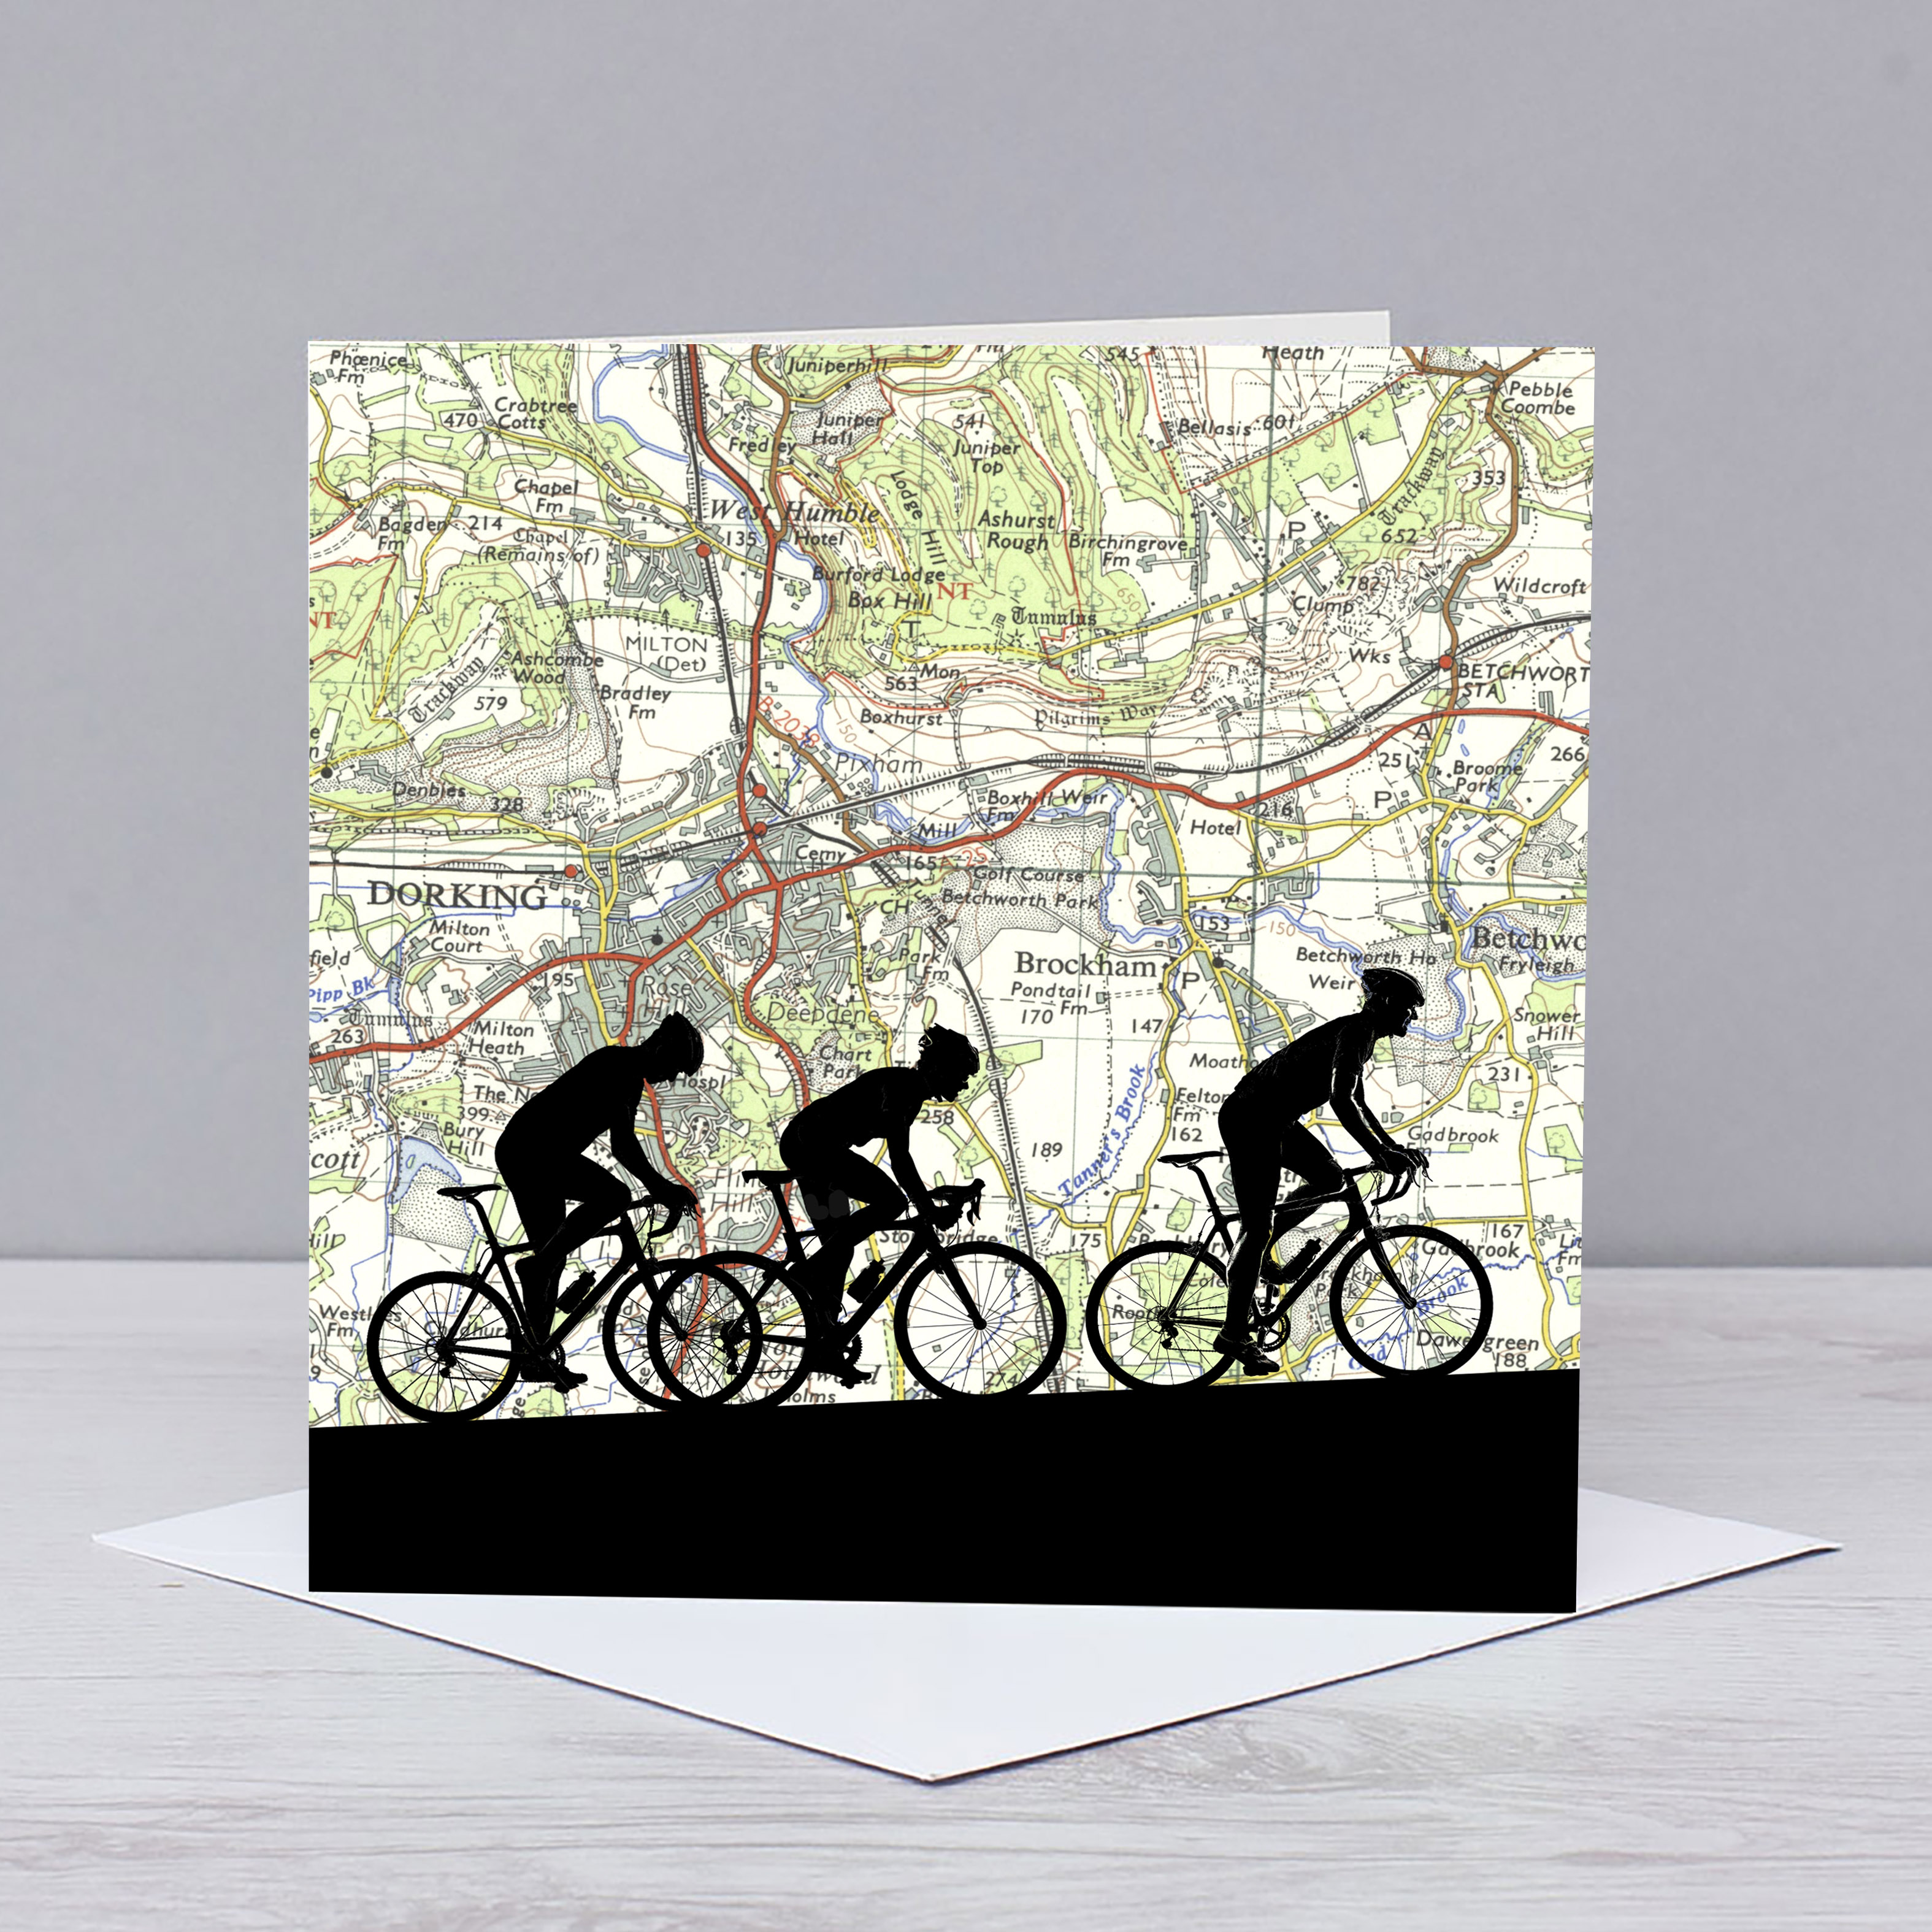 Cycling Over Box Hill & Surrey Card